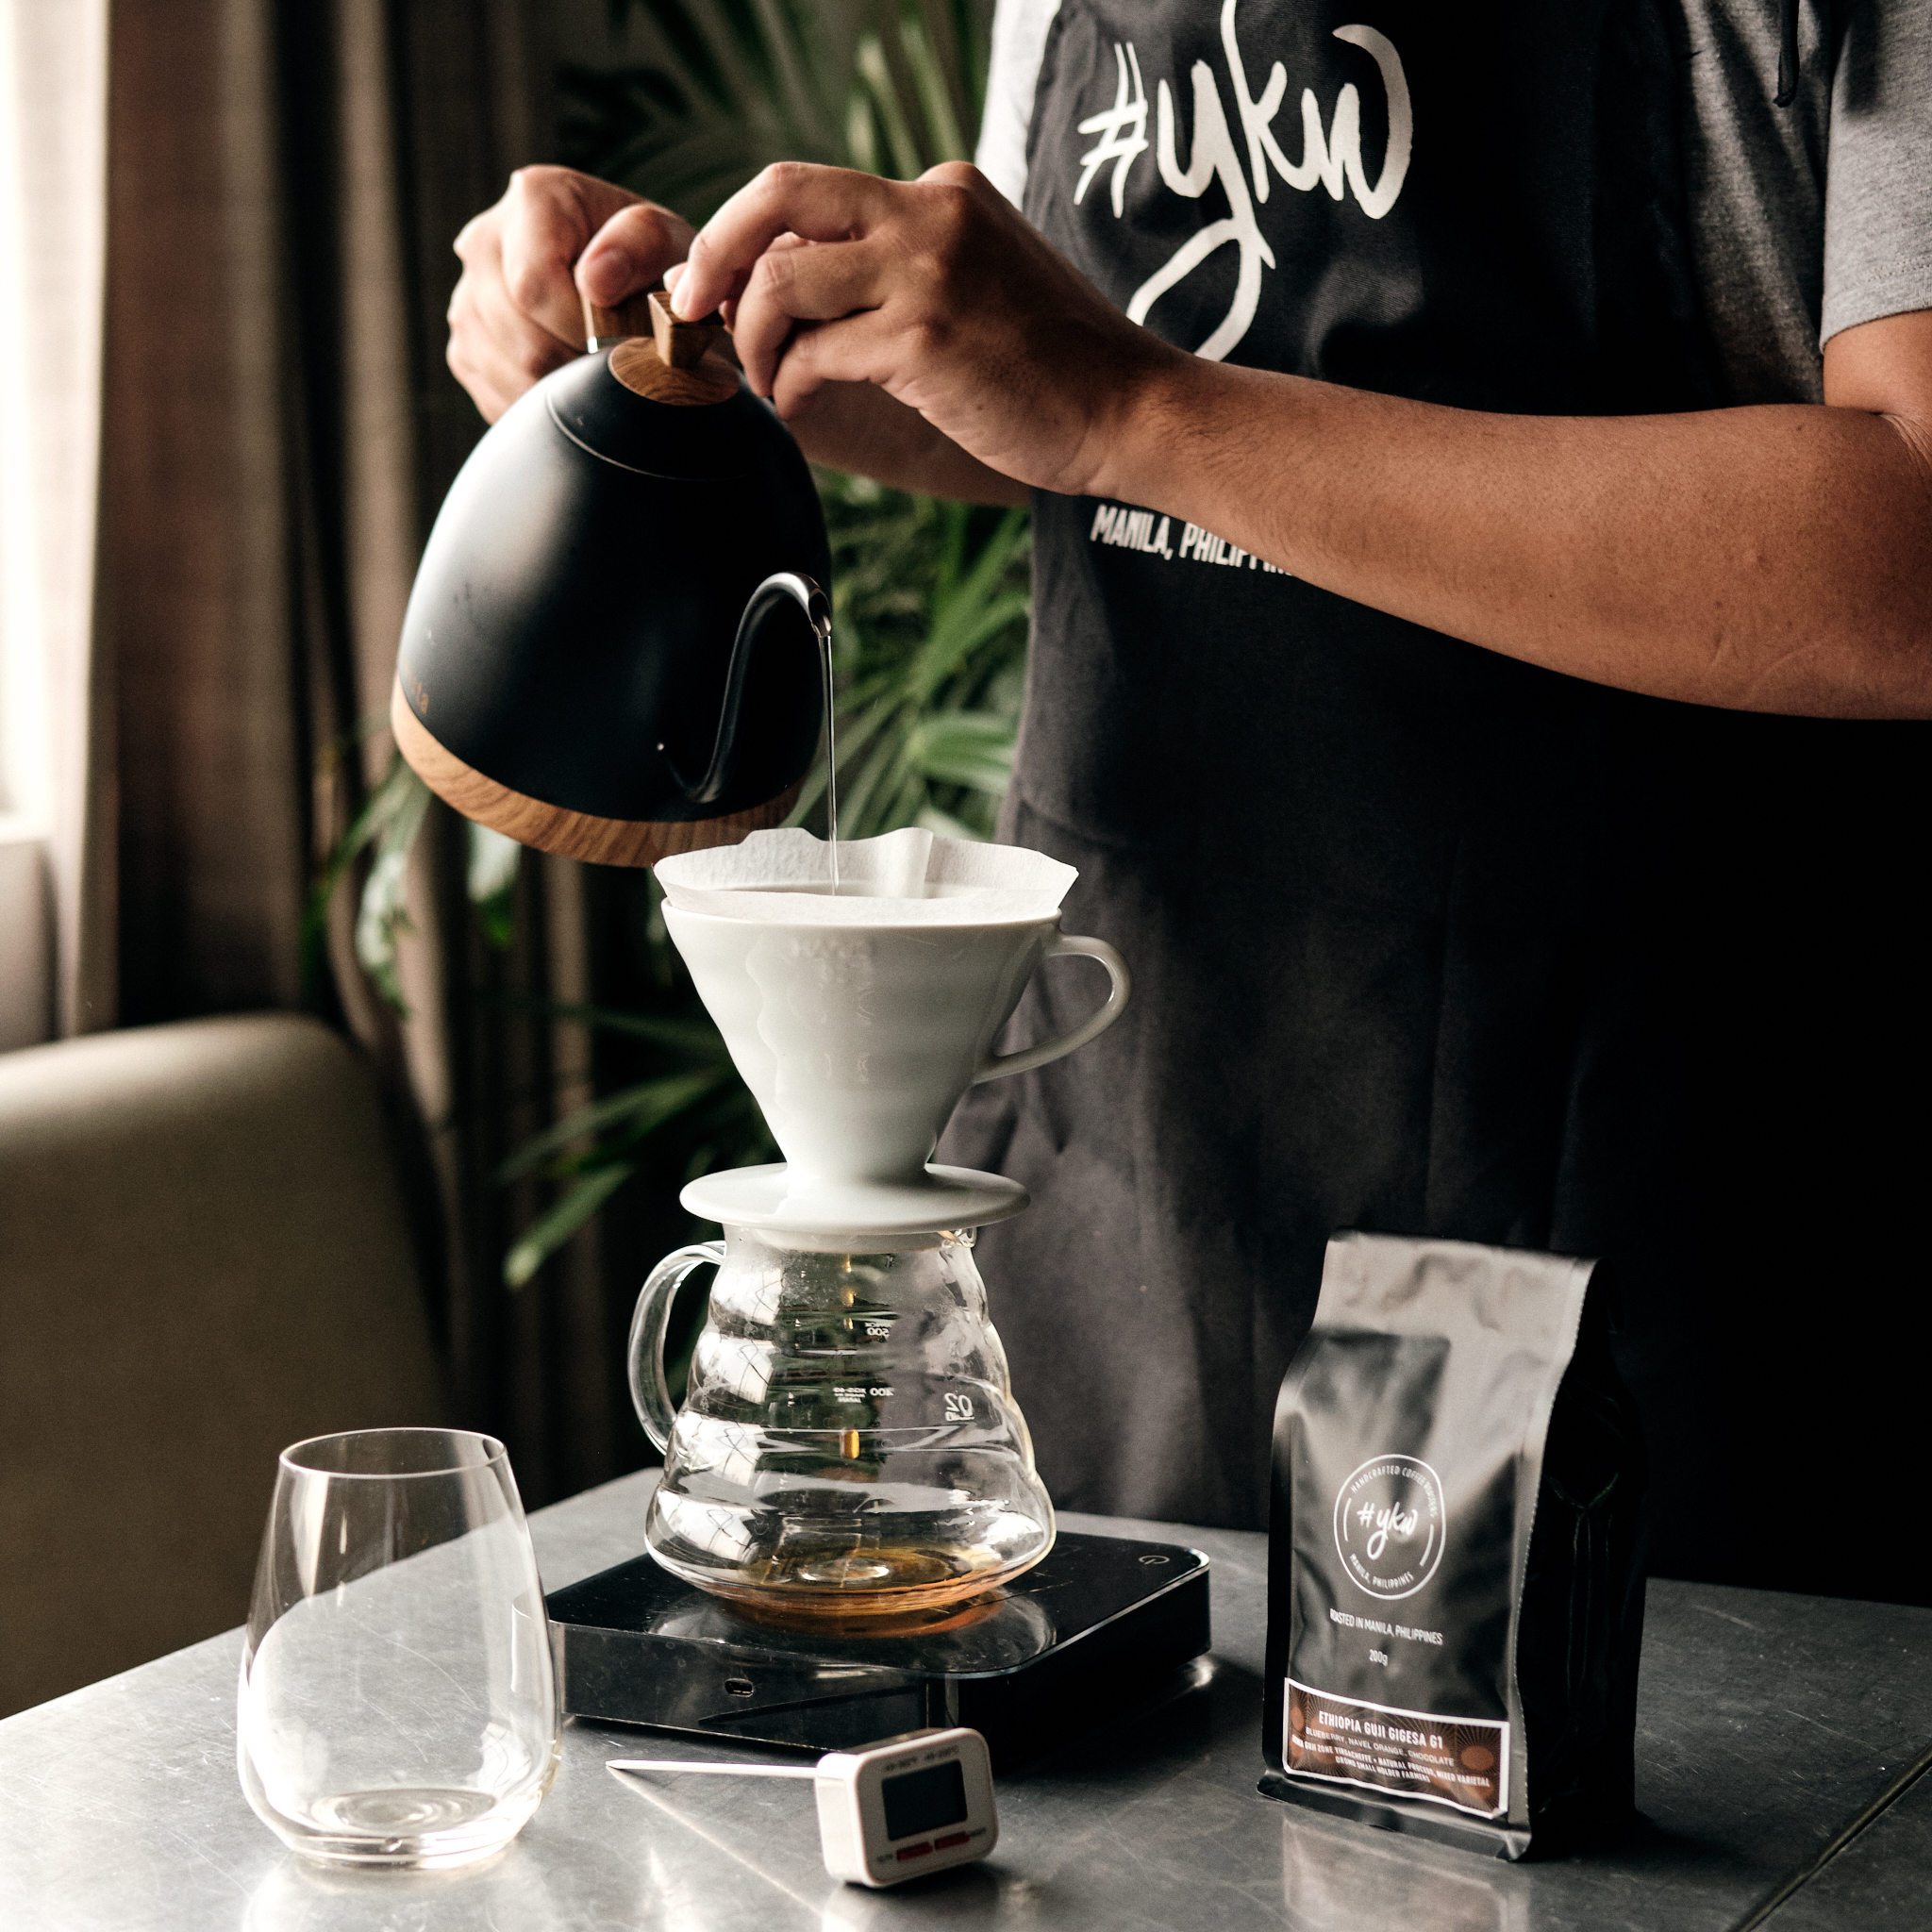 Brewing 101 - Offers to anyone who is curious about specialty coffee and manual brewing.This hands-on class gives you tools you need to perfect your coffee routine at home or at your office. No experience necessary.Time: Tuesdays 2:00pm -5:00pmDuration: 3 HoursClass Size: 1-4 participantsFee: 2500php | person